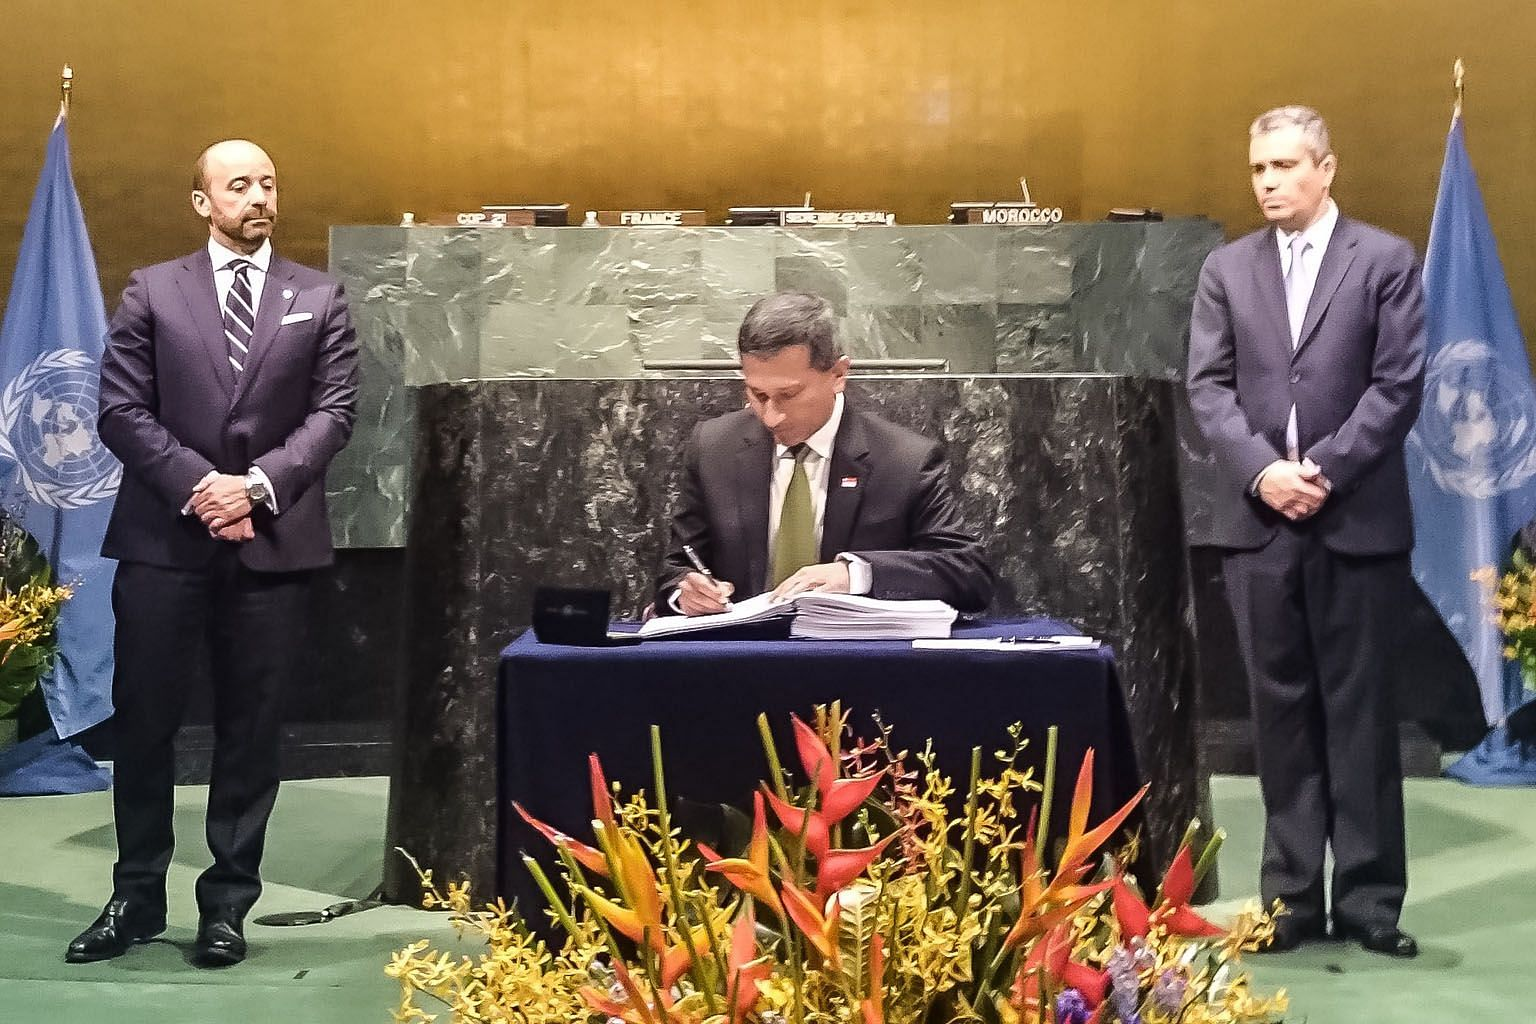 Minister for Foreign Affairs Vivian Balakrishnan signing the Paris Agreement on climate change at the United Nations on Friday.